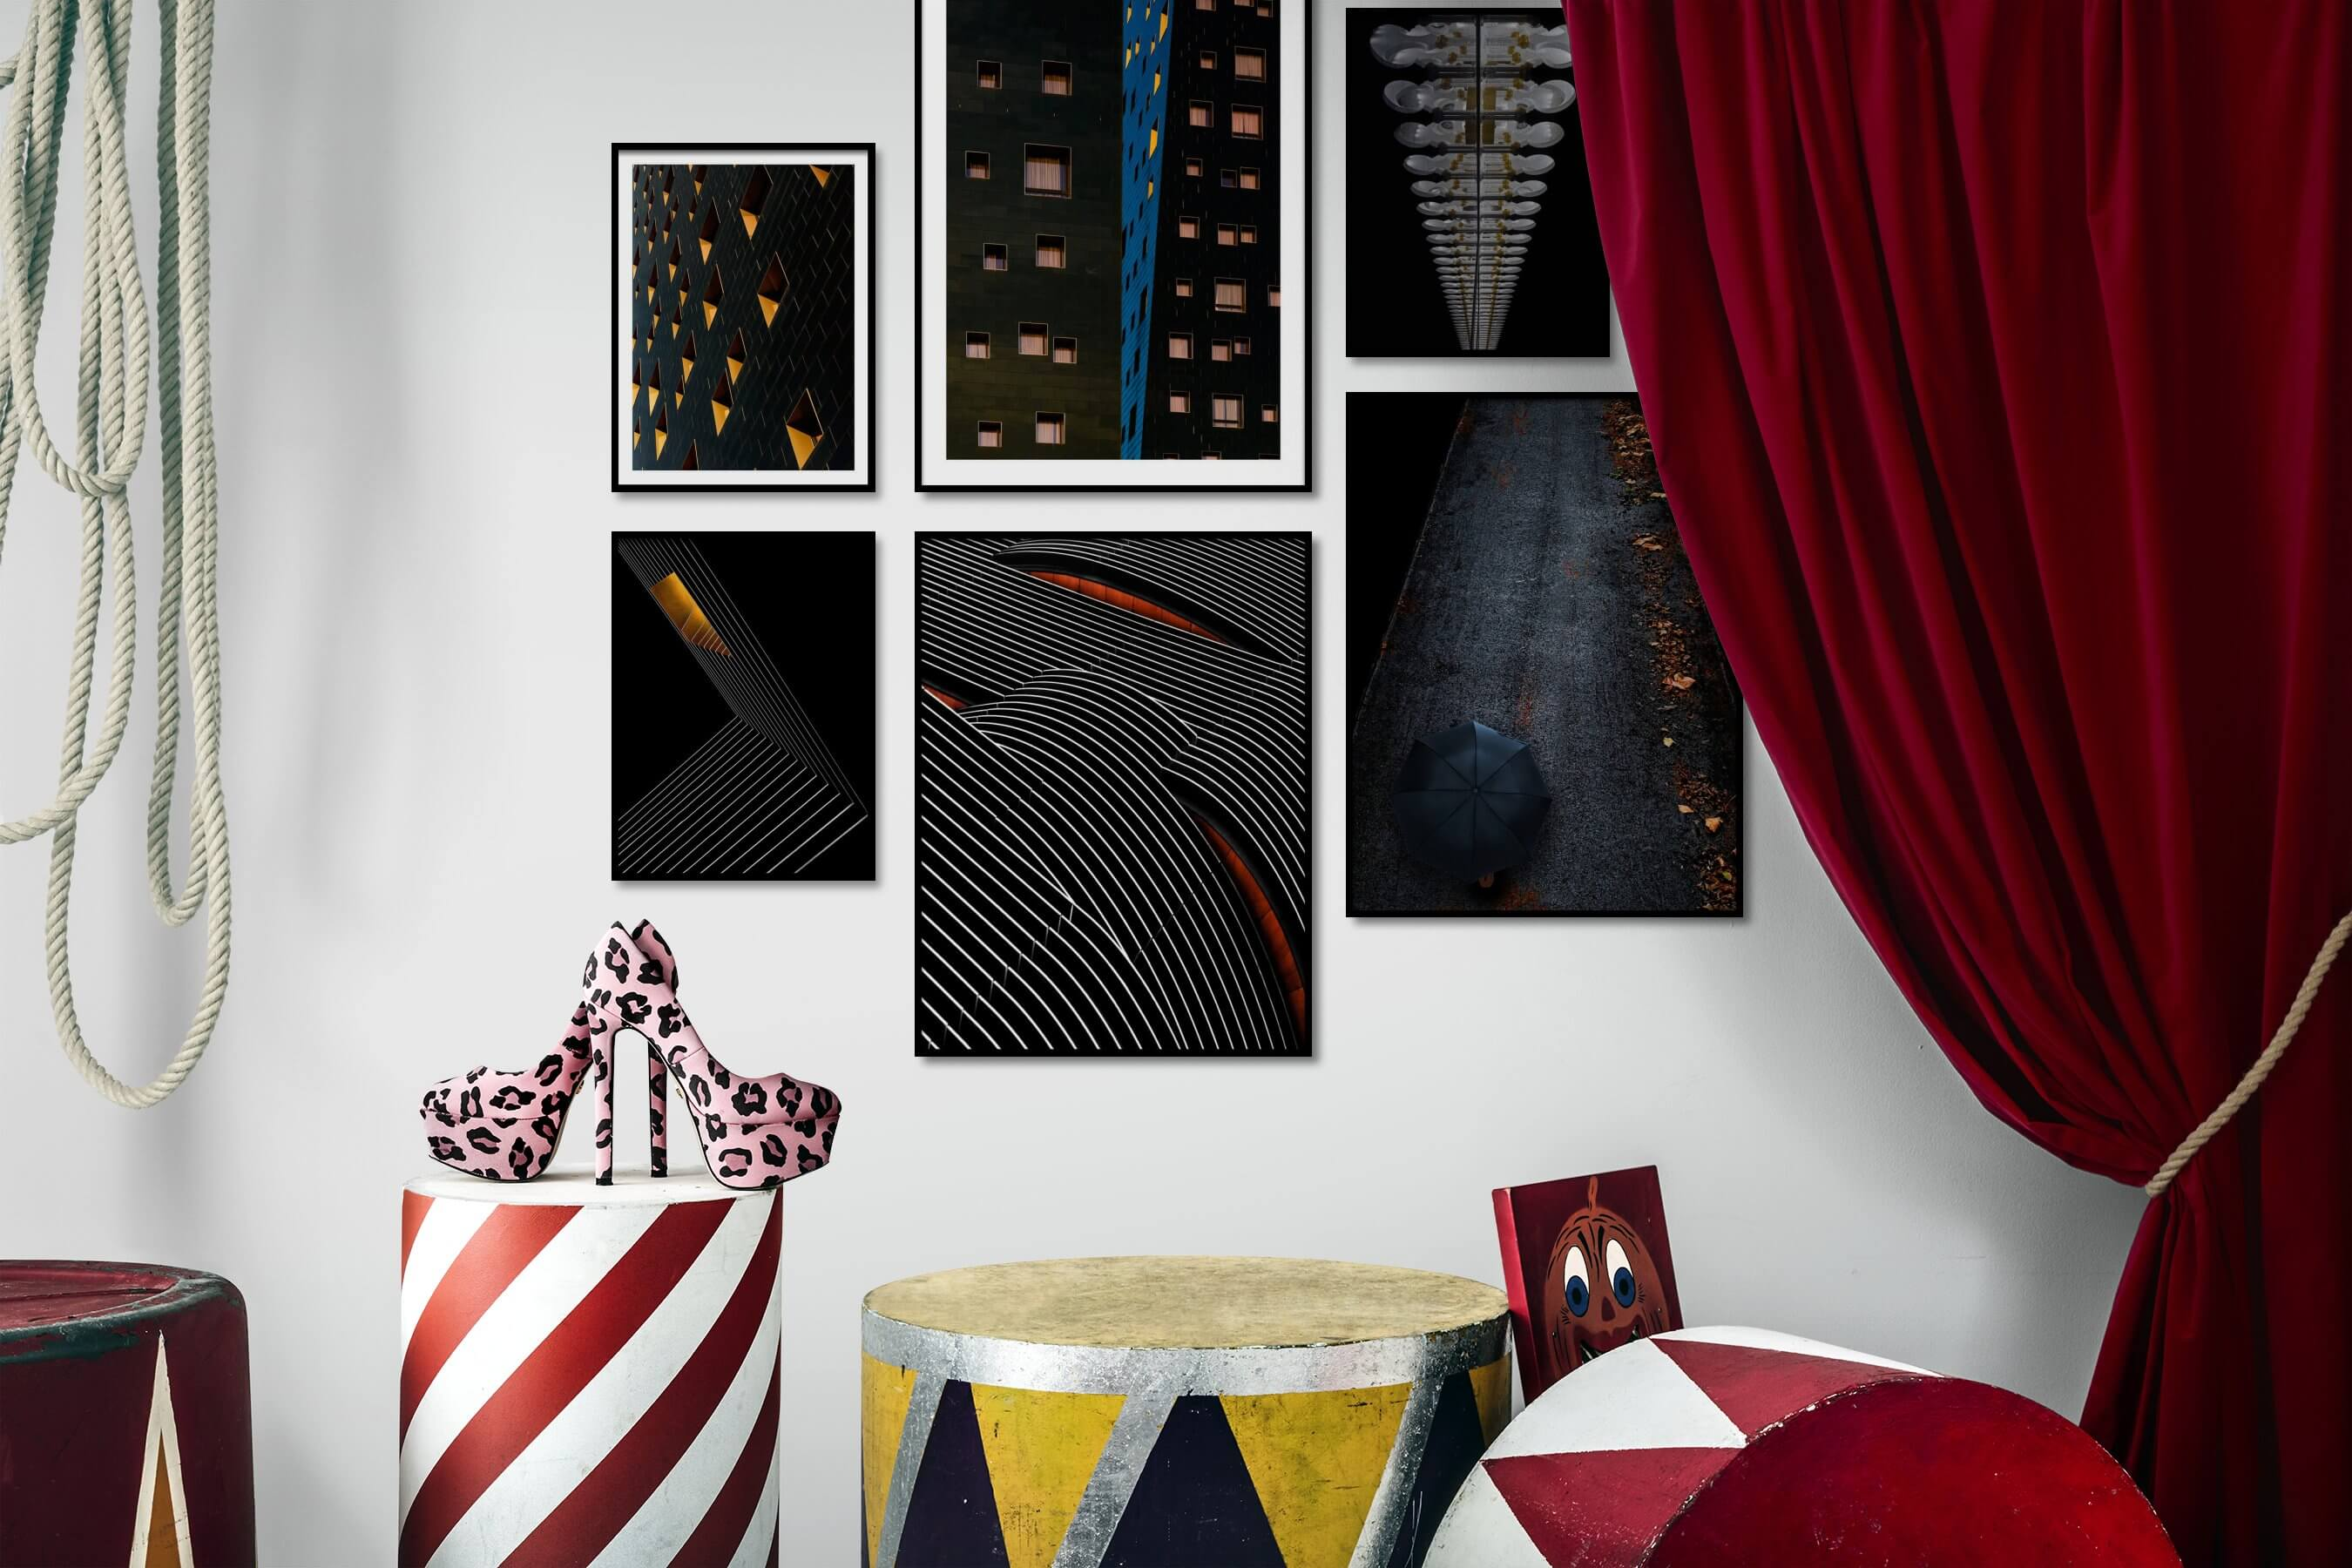 Gallery wall idea with six framed pictures arranged on a wall depicting For the Moderate, City Life, Dark Tones, For the Minimalist, and For the Maximalist